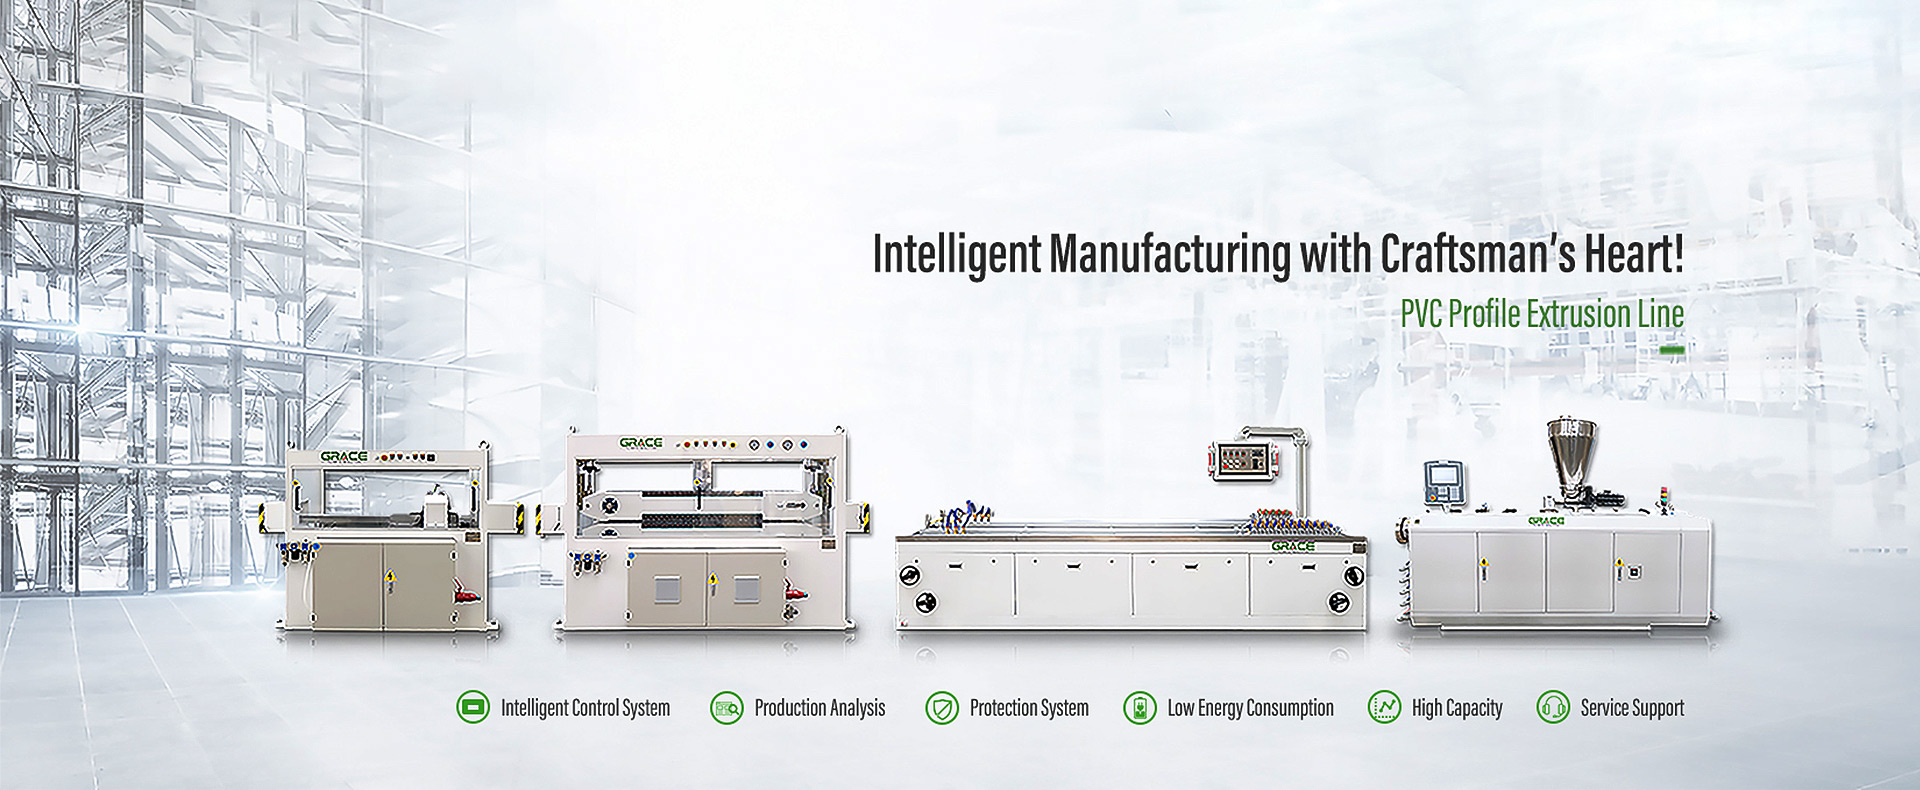 https://www.gracepm.com/wpc-profile-extrusion-line-product/